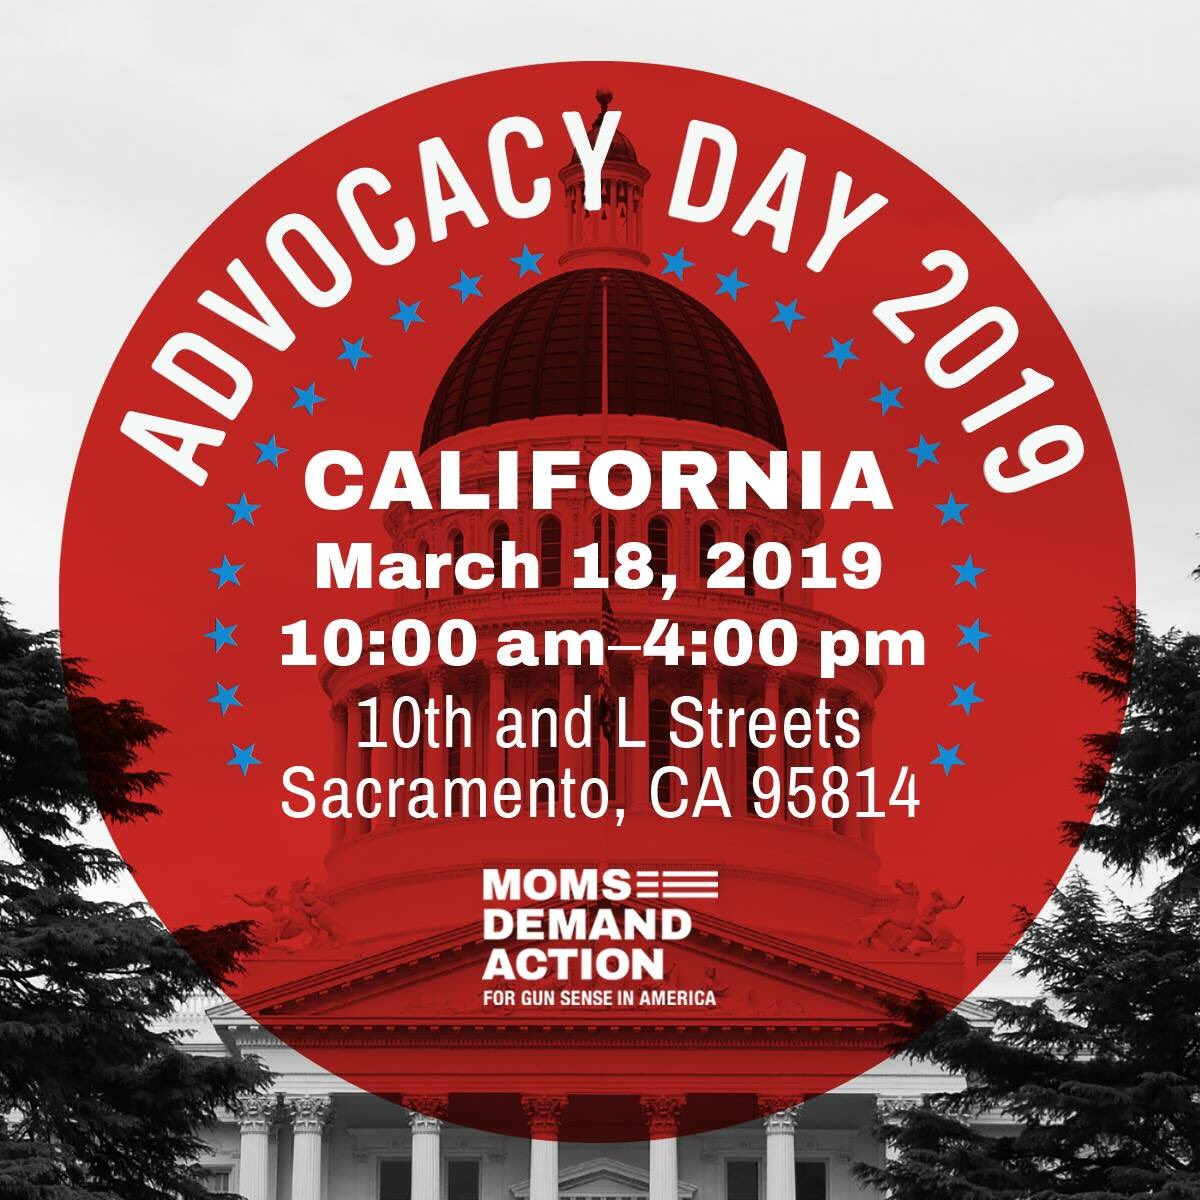 Join California @MomsDemand in Sacramento on March 18 for Advocacy Day 2019 - sign up at https://act.everytown.org/event/moms-demand-action-event/18548/signup/?source=tmno_events-keyword&akid&zip …  @JGoCAmom @miltsdad @Alex02ny and I are going! Join us!